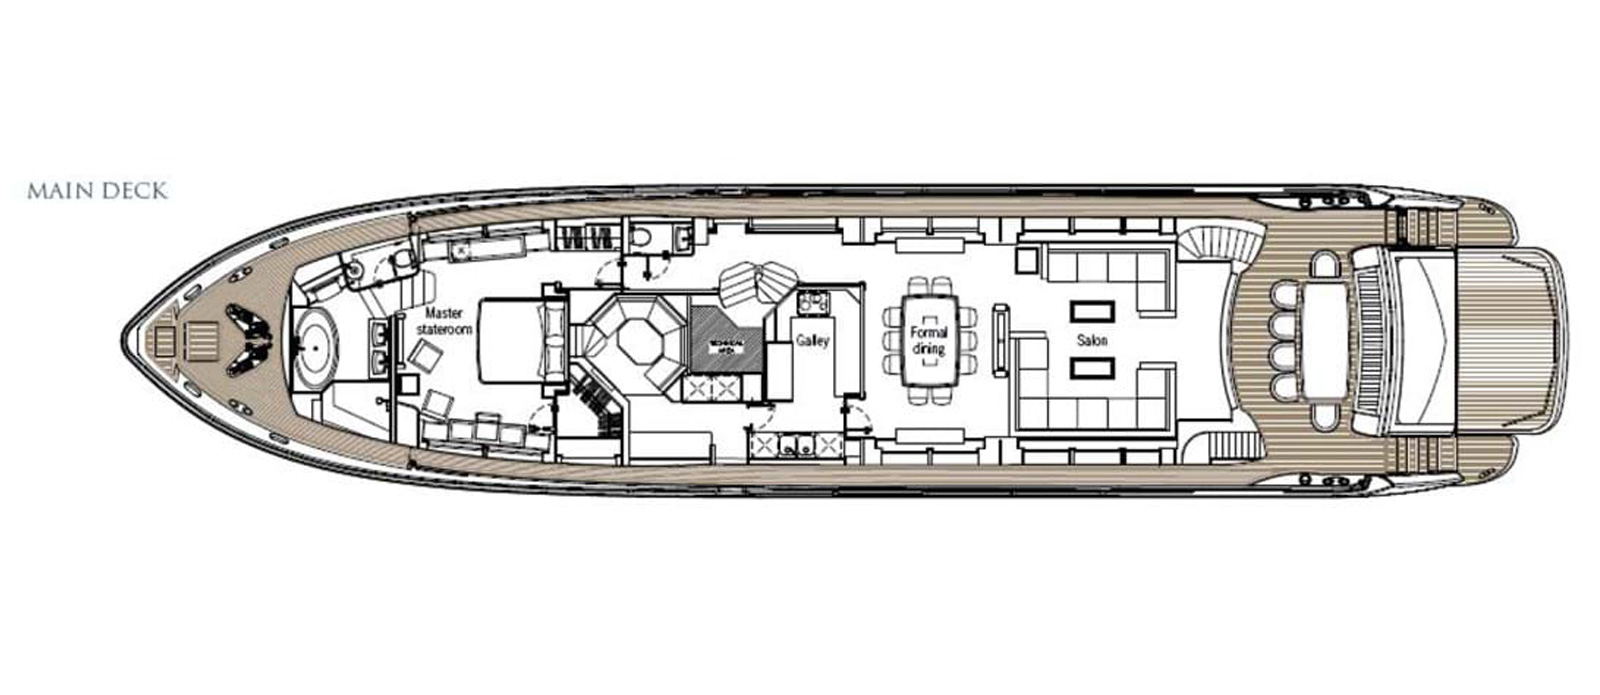 Frivolous - Main Deck Layout